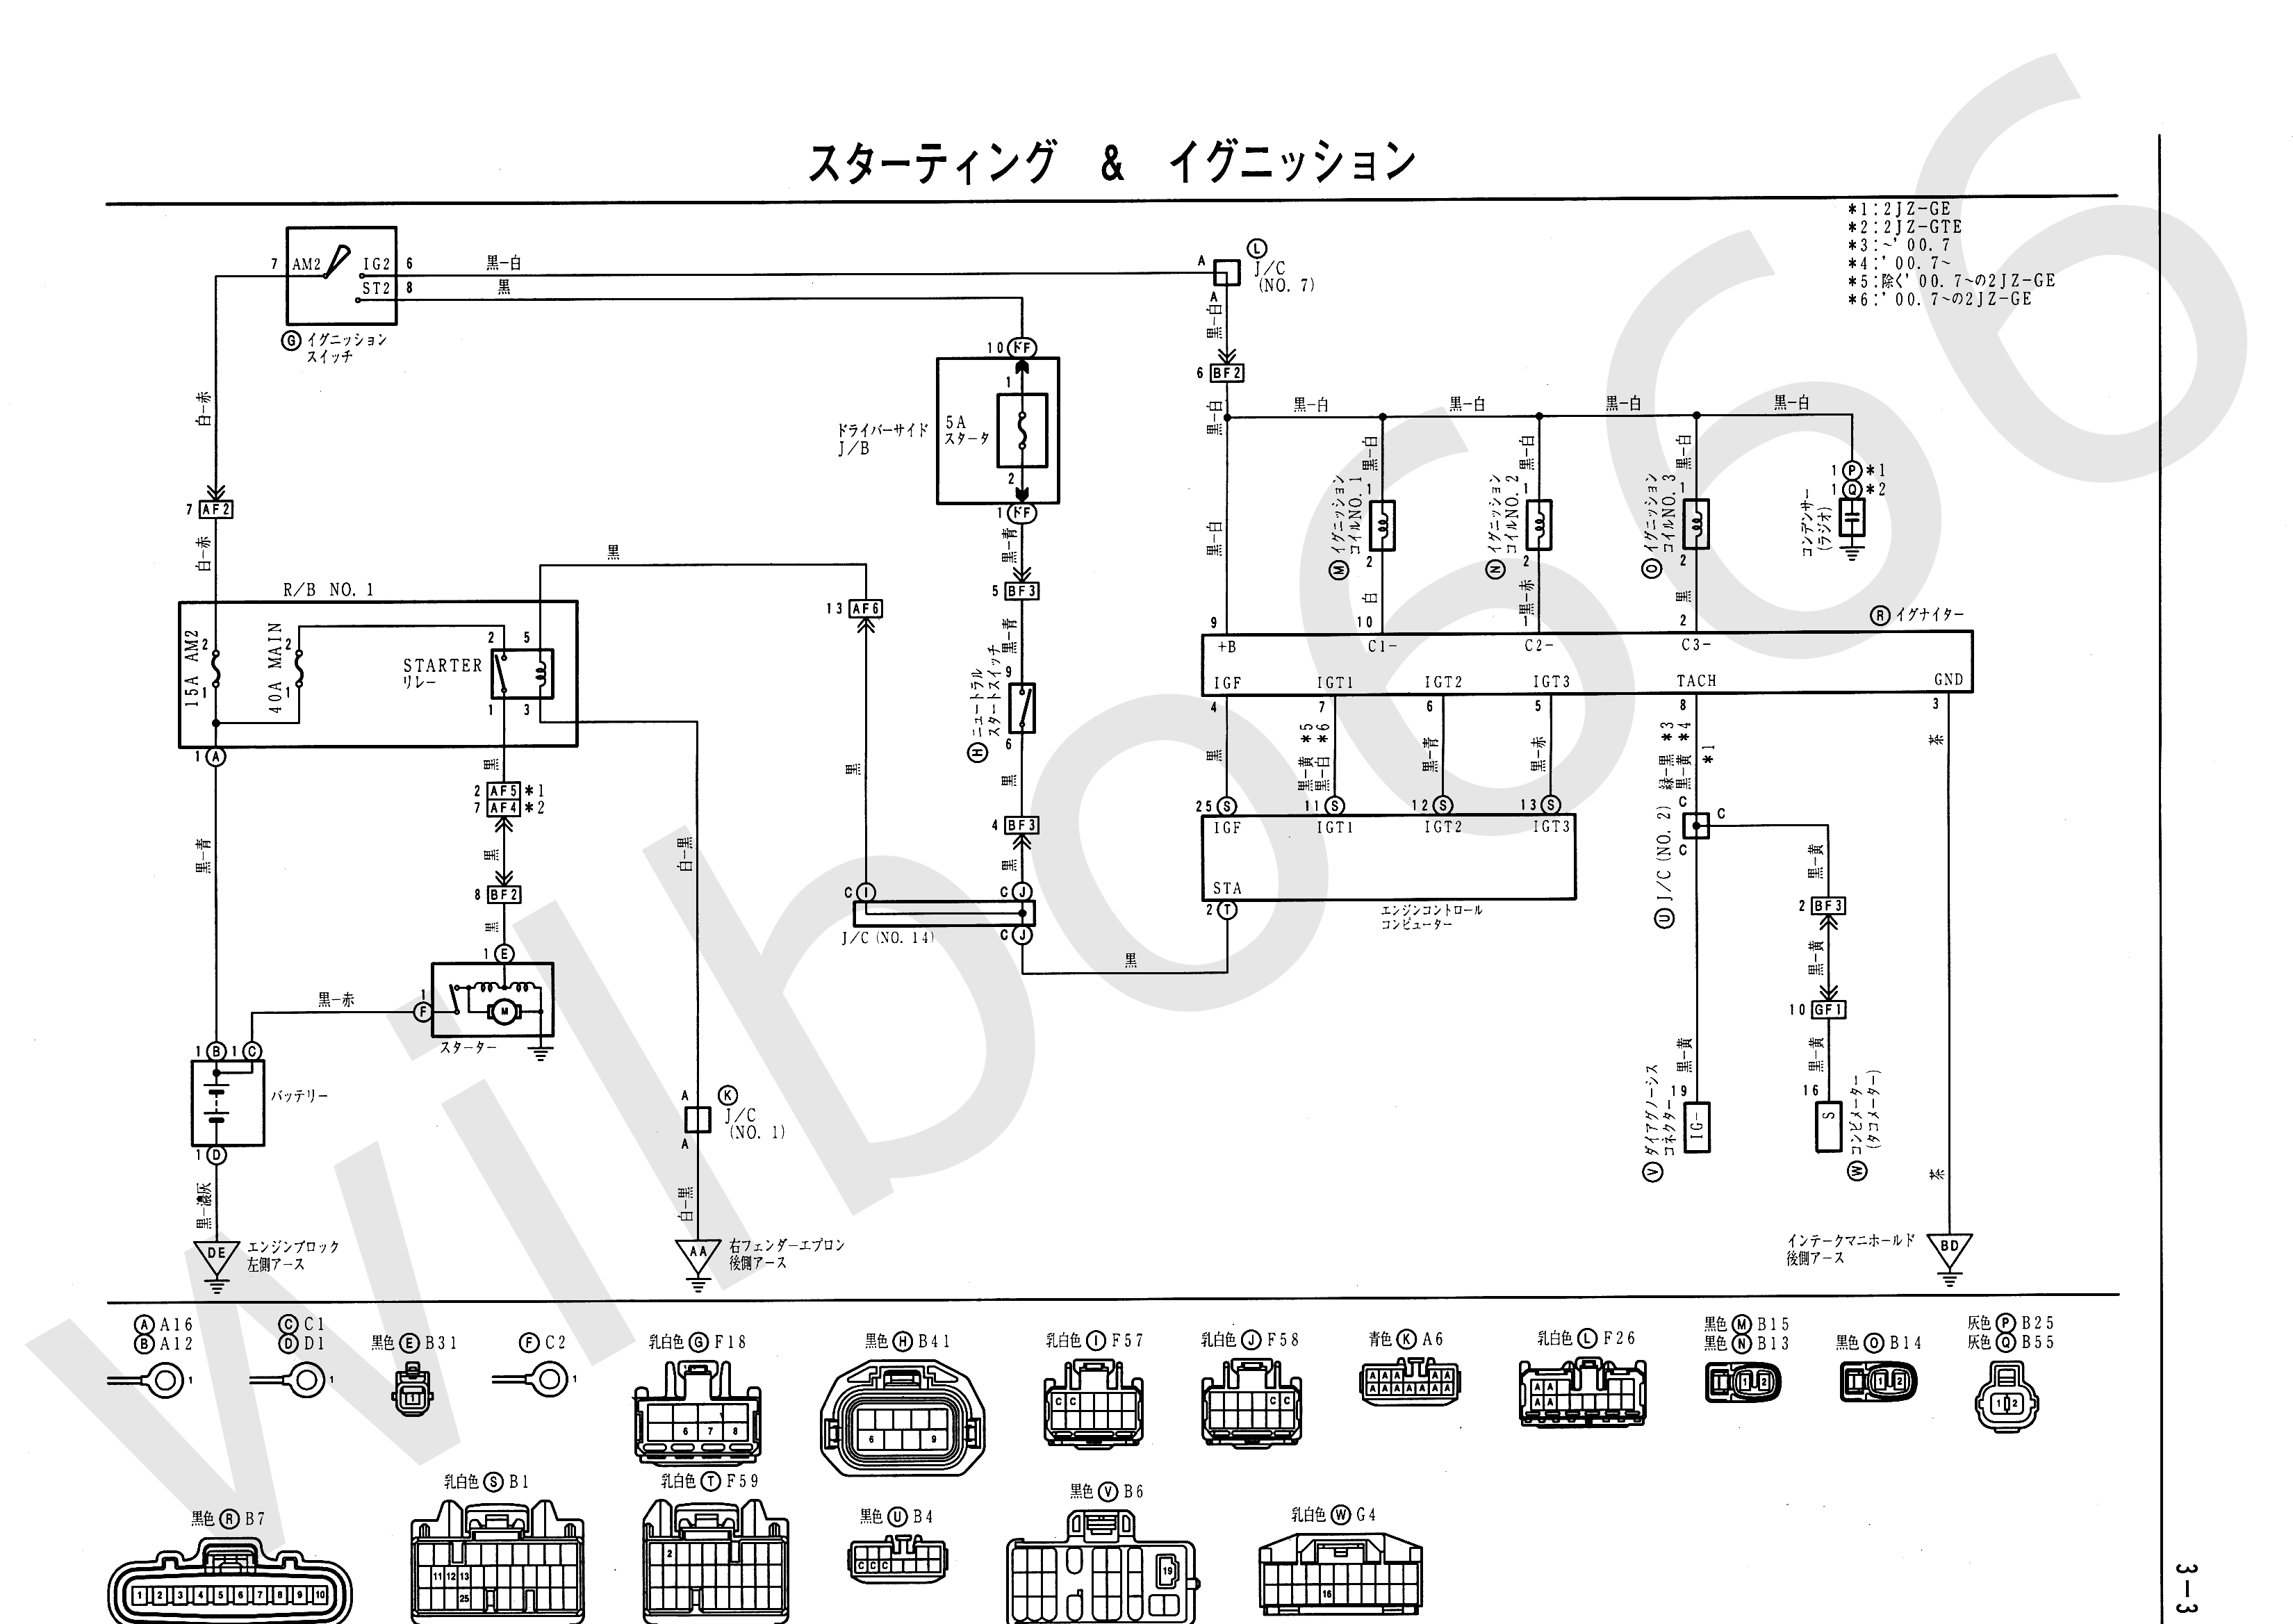 Wilbo666 2jz Gte Vvti Jzs161 Aristo Engine Wiring 7 Wire Fan Diagram Toyota Diagrams